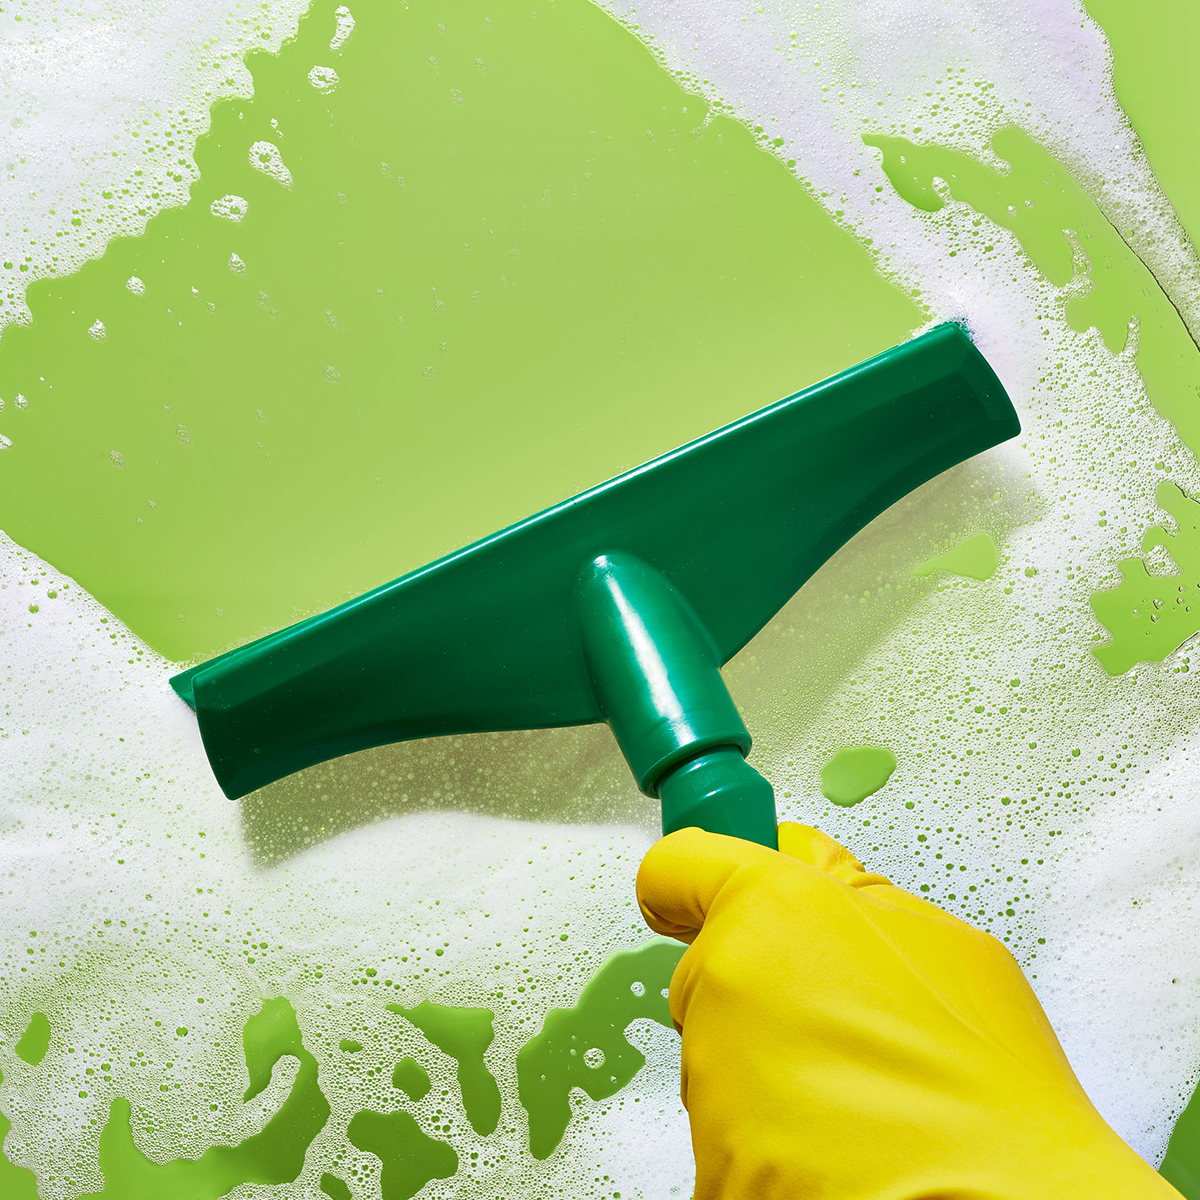 green squeegee and rubber glove